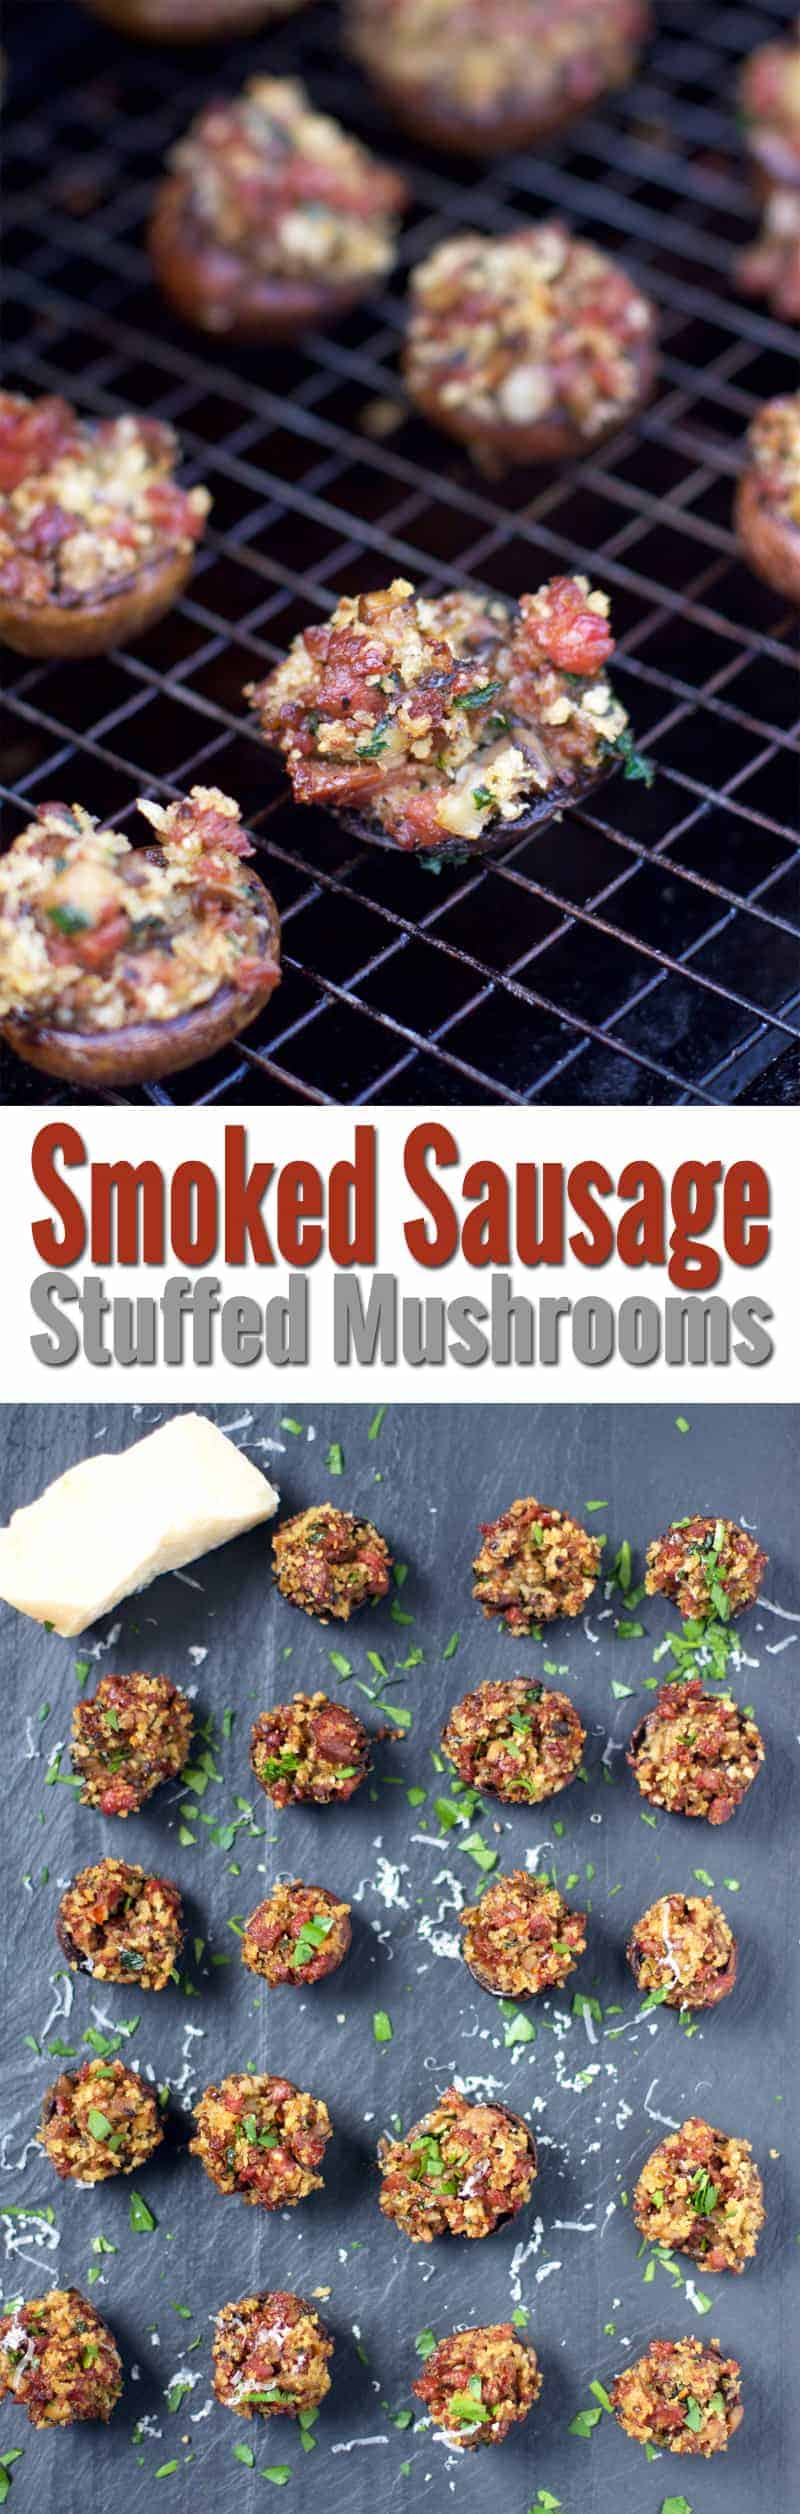 Smoked Sausage Stuffed Mushrooms Vindulge